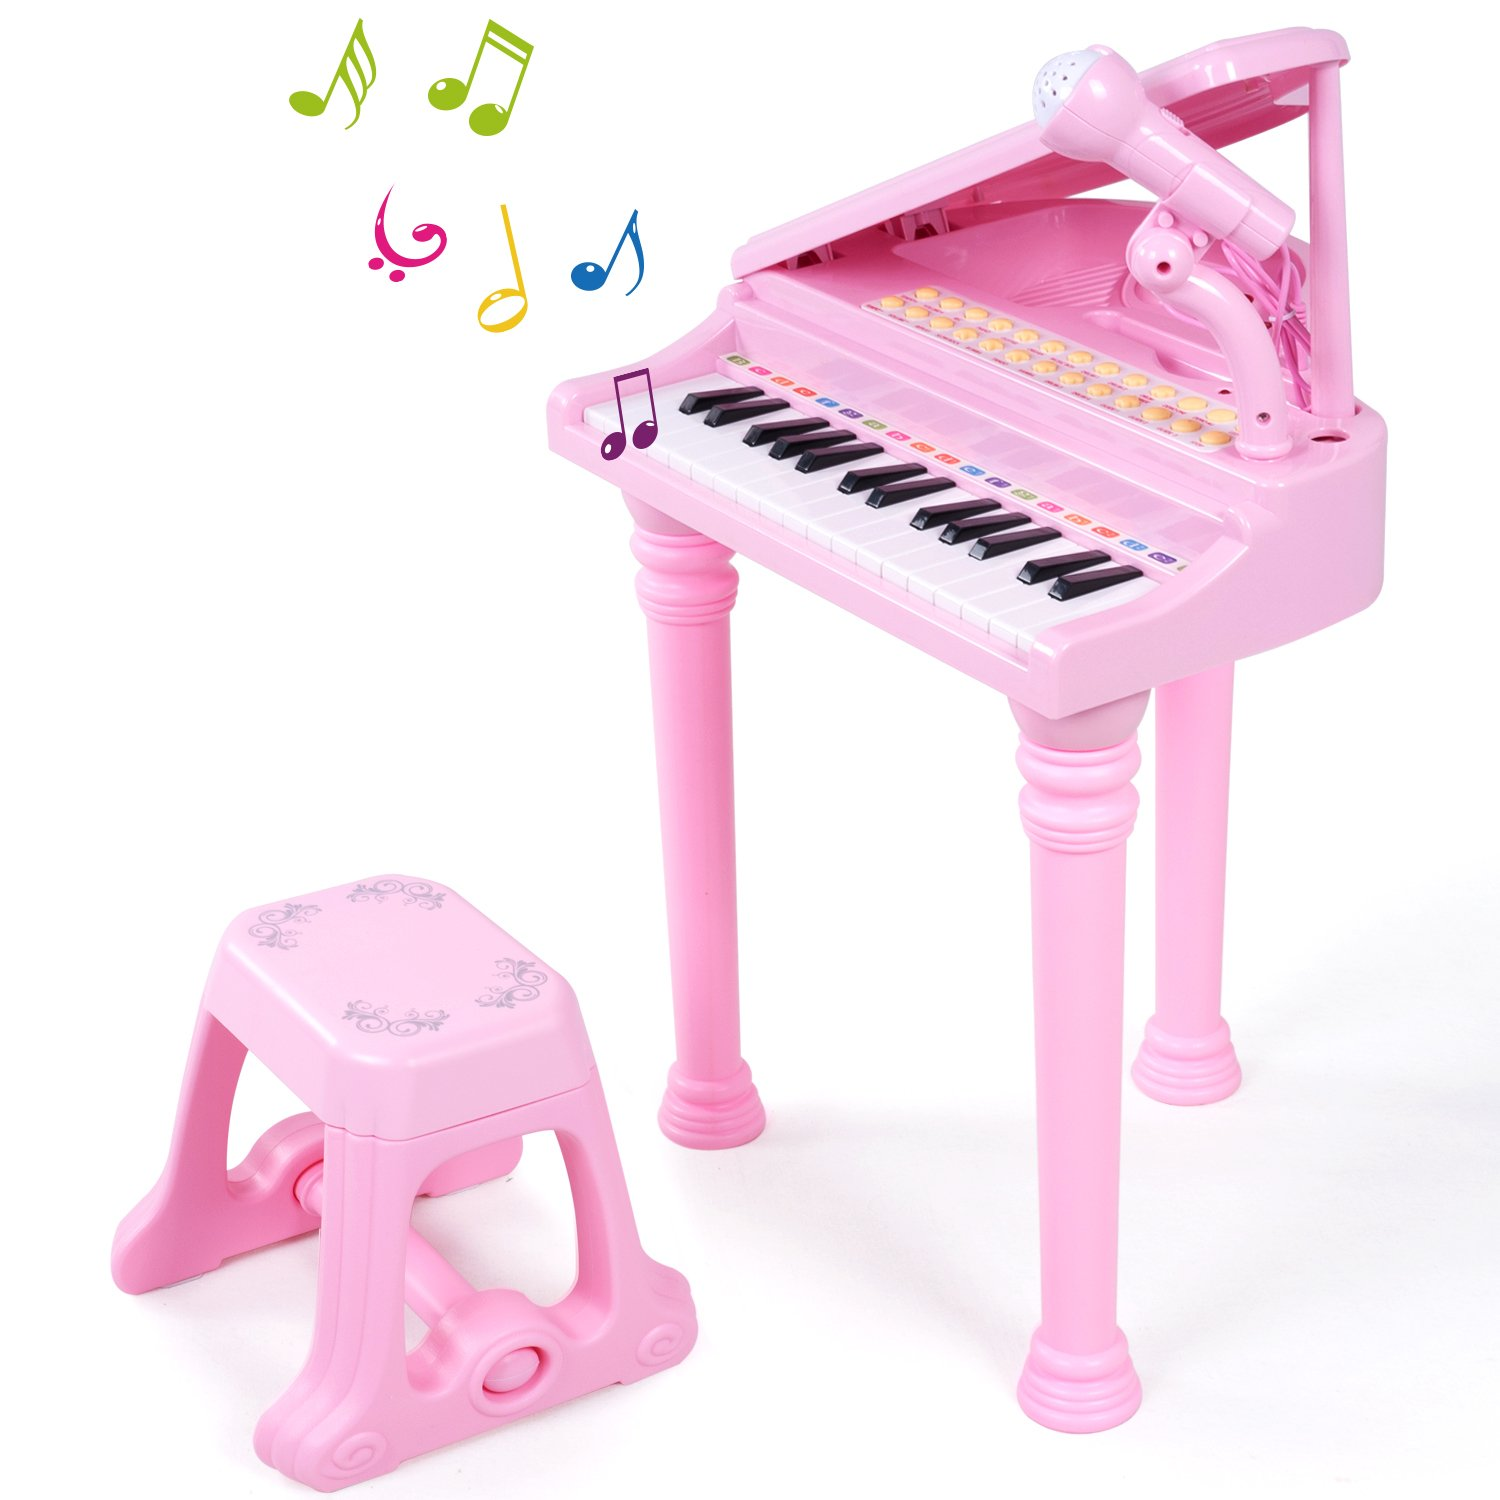 ANTAPRCIS 31 Keys Piano Keyboard Musical Toy Early Educational Musical Instruments for Kids Toddlers with Microphone and Stool, Pink